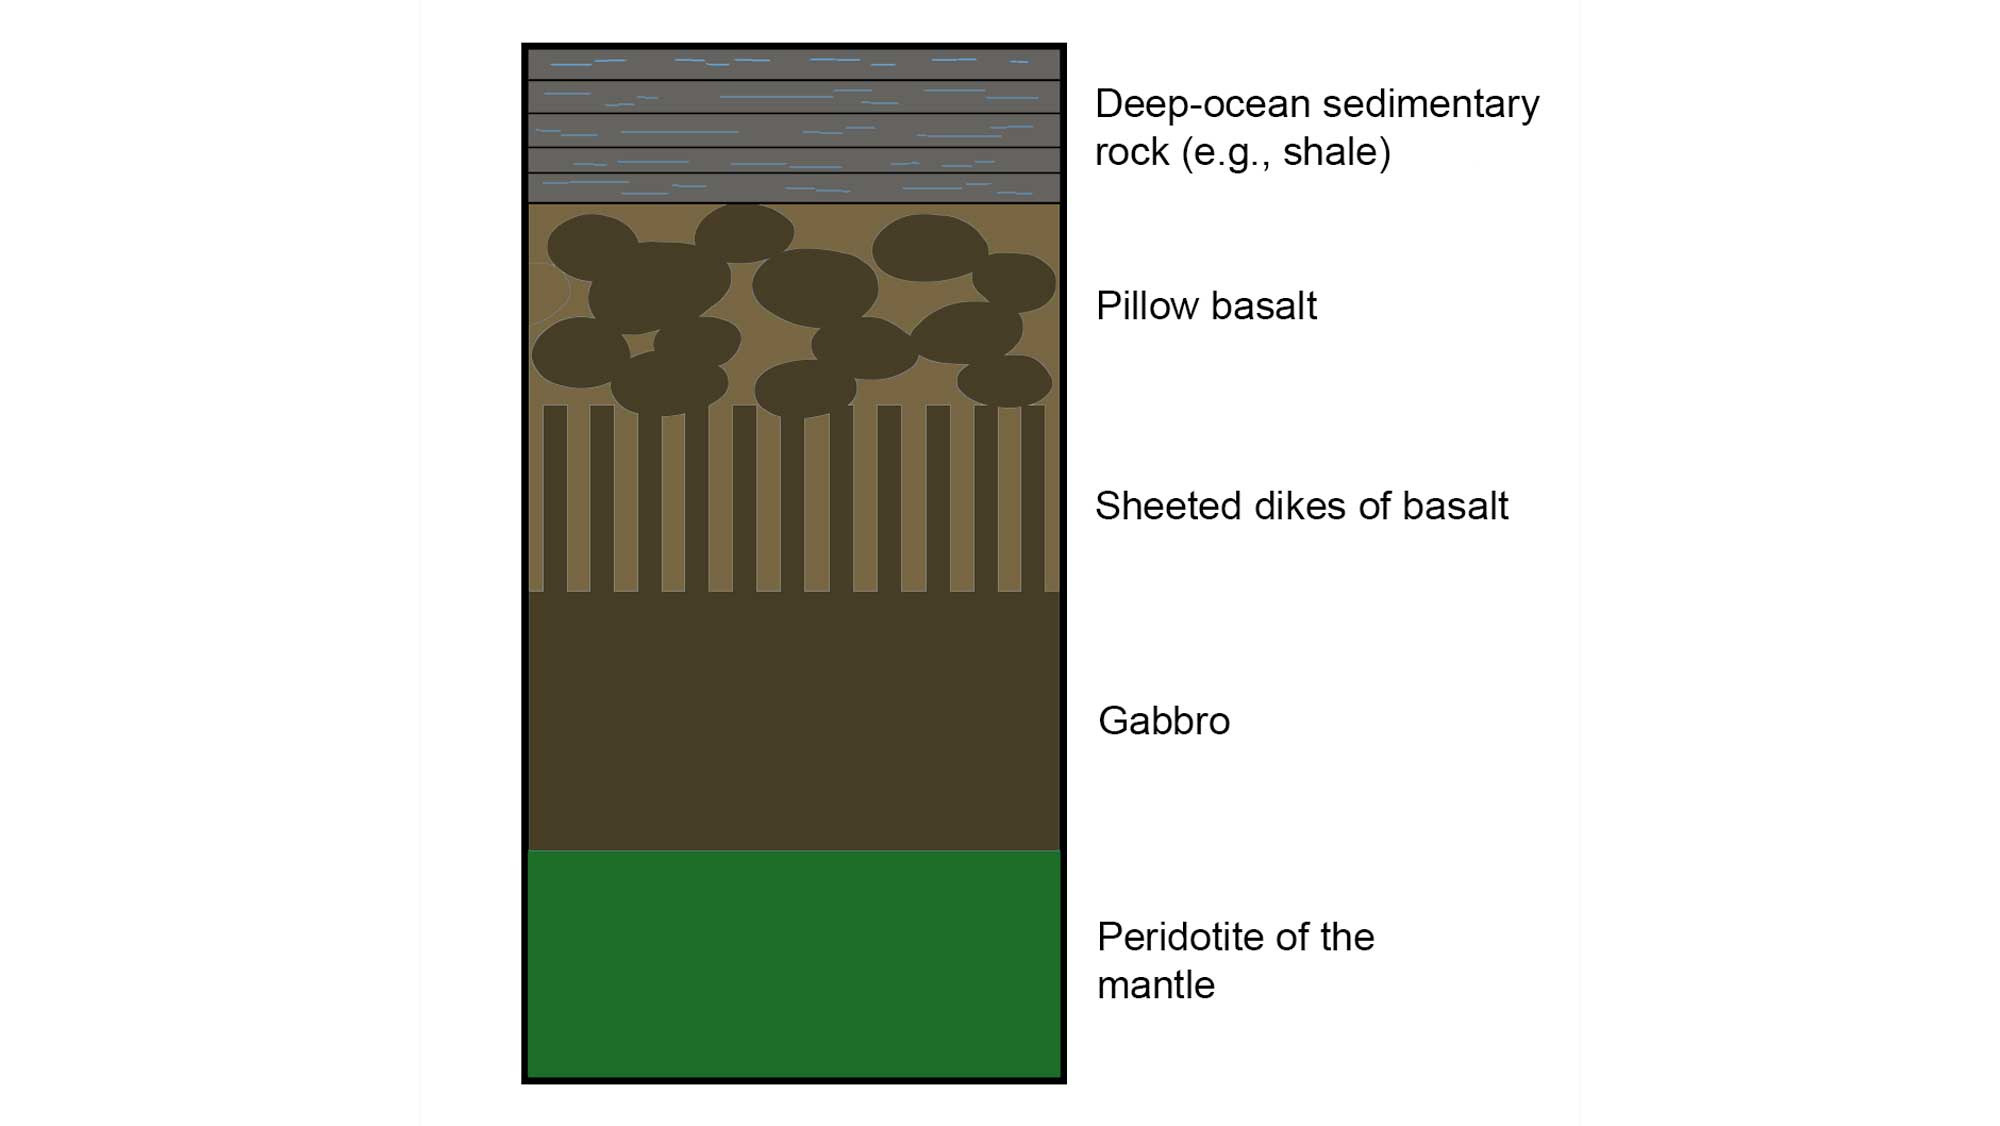 Simplified illustration showing the structure of an ophiolite sequence.